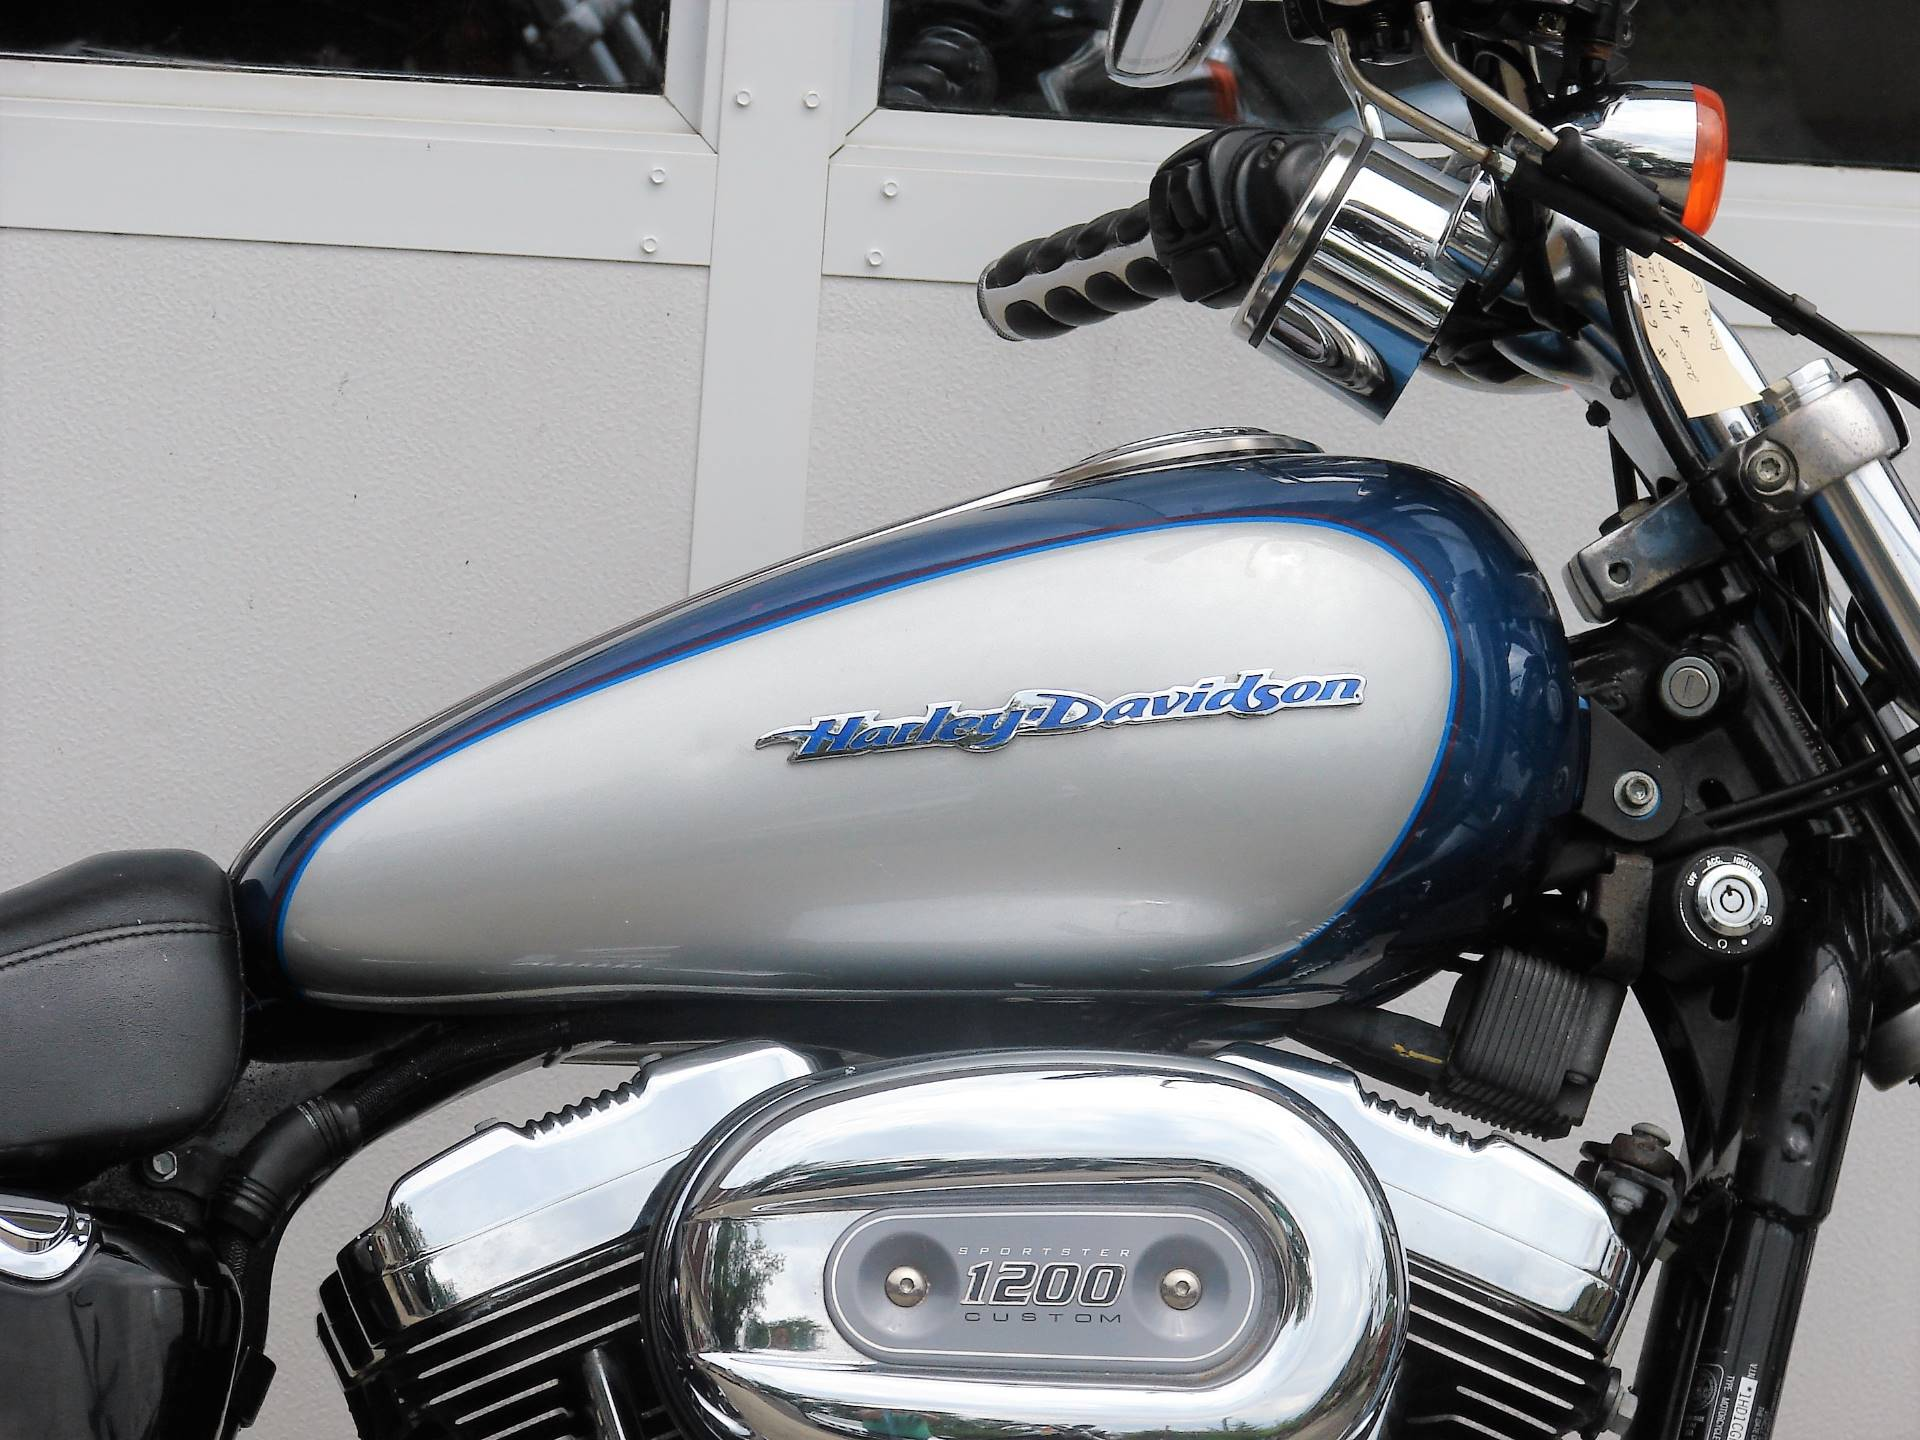 2005 Harley-Davidson Sportster® XL 1200 Custom in Williamstown, New Jersey - Photo 12